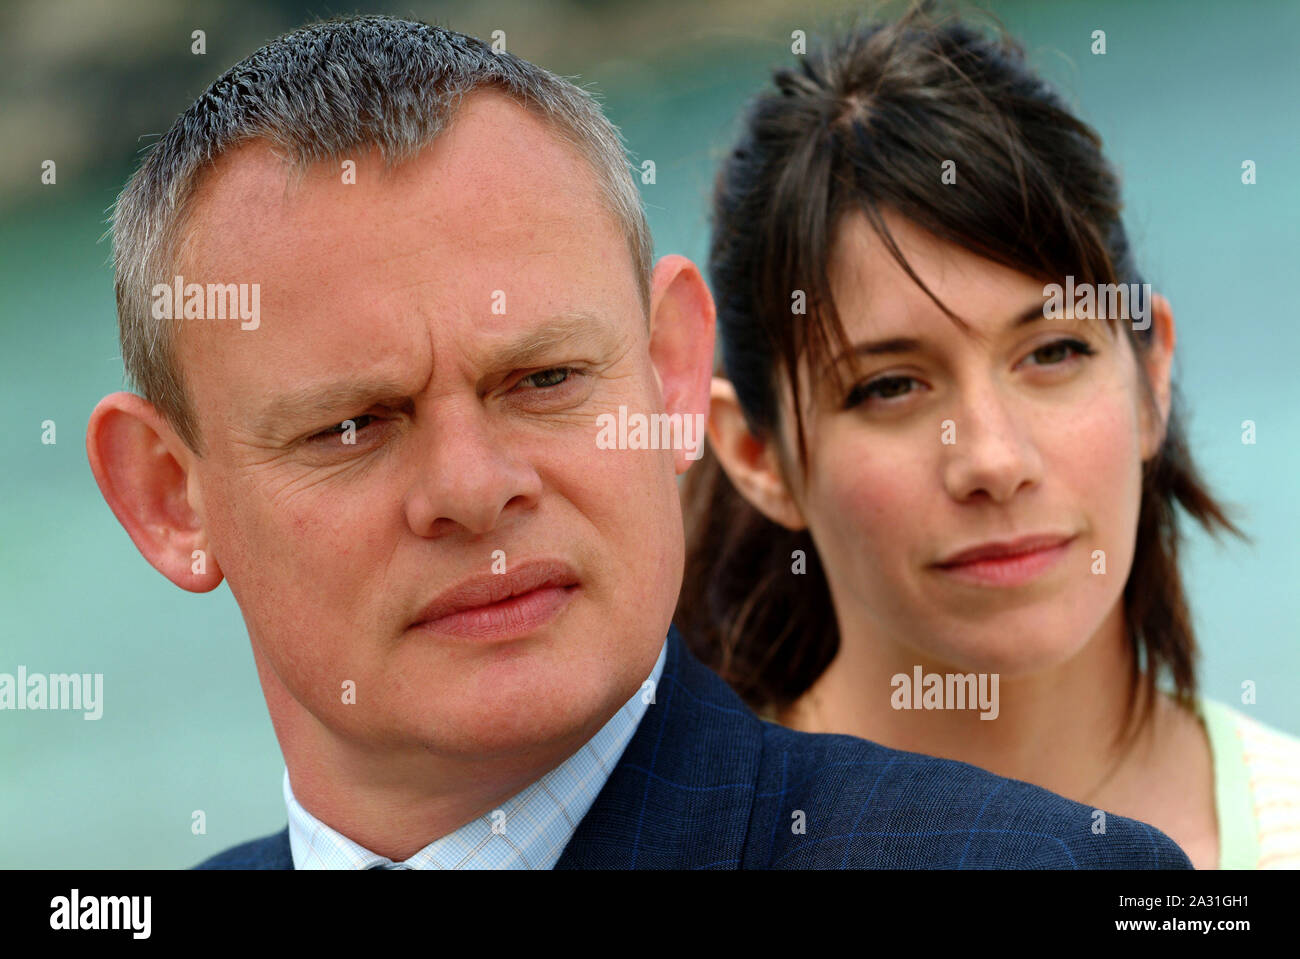 Doc Martin tv series,filmed in Port Isaac,Cornwall,UK,starring Martin Clunes & Caroline Catz,produced by Clunes wife Philippa Braithwaite(striped top) Stock Photo